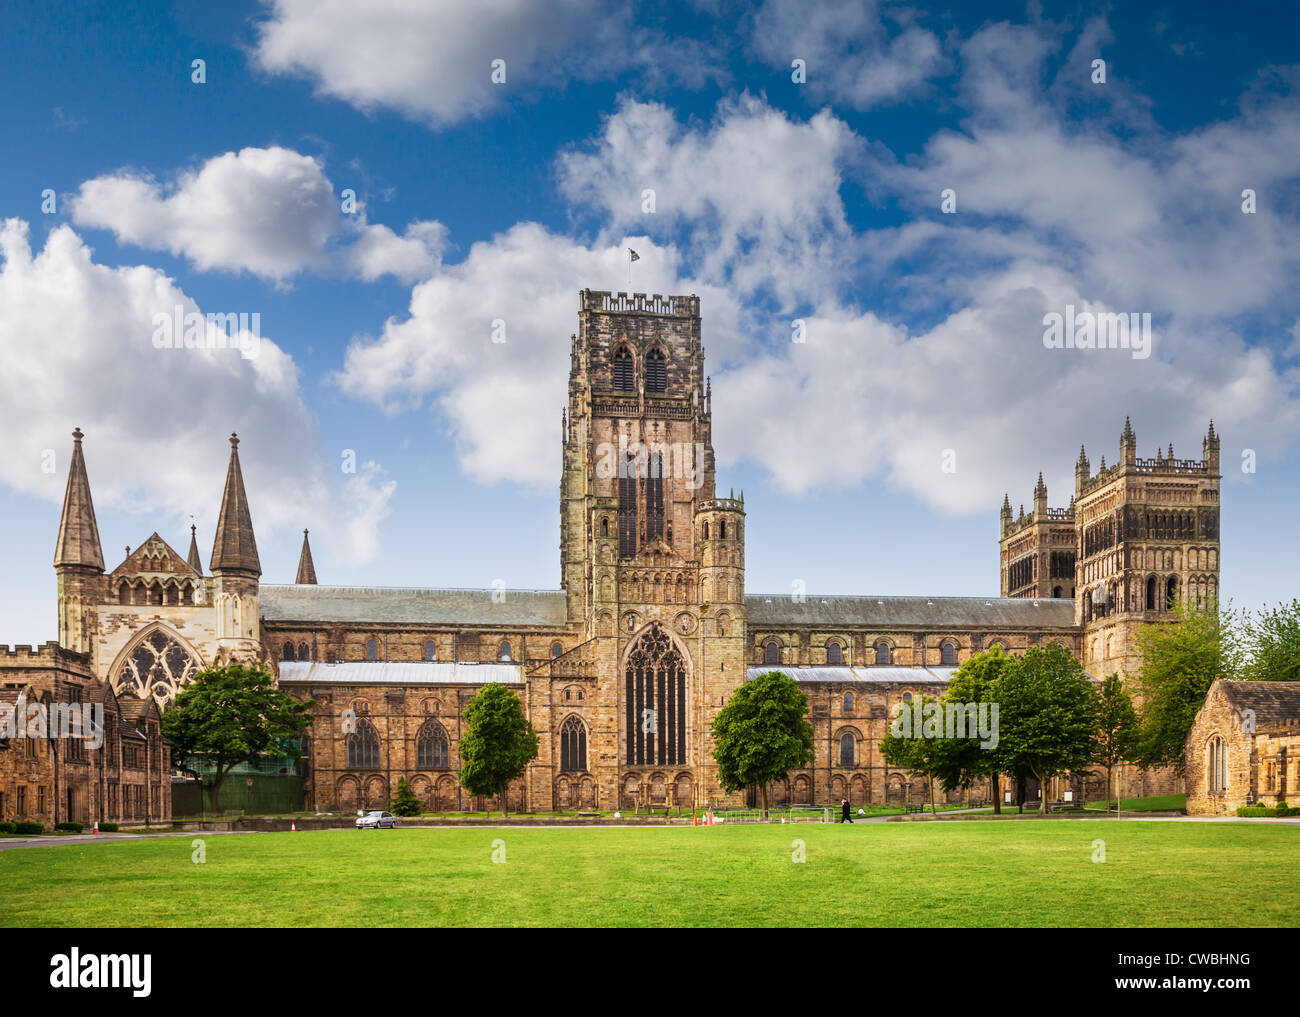 Durham Cathedral and Palace Green, Durham City, England. Stock Photo